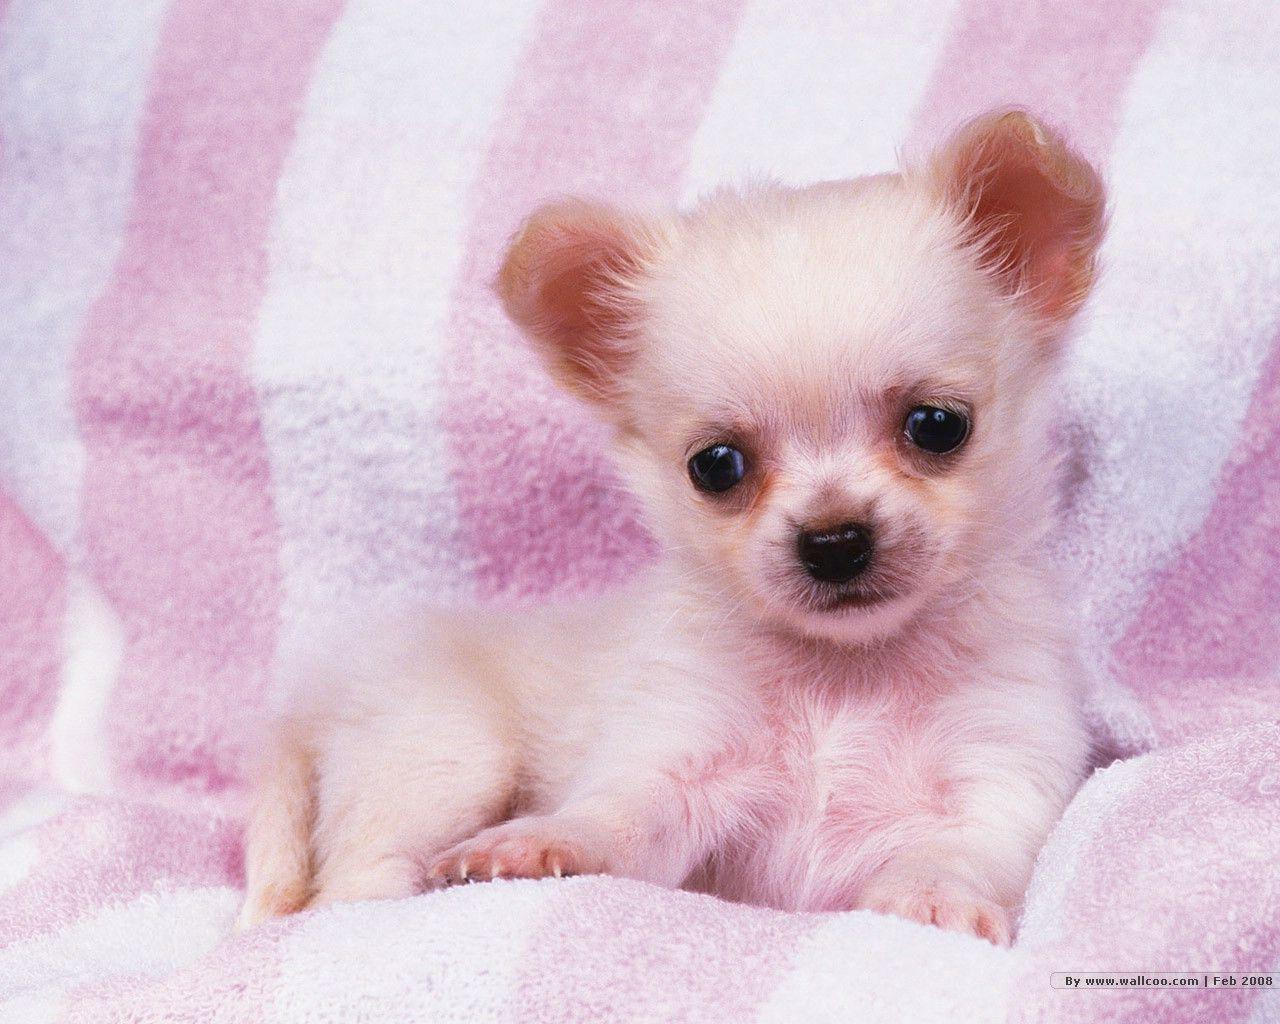 Cute Puppy Wallpapers For Desktop - Wallpaper Cave